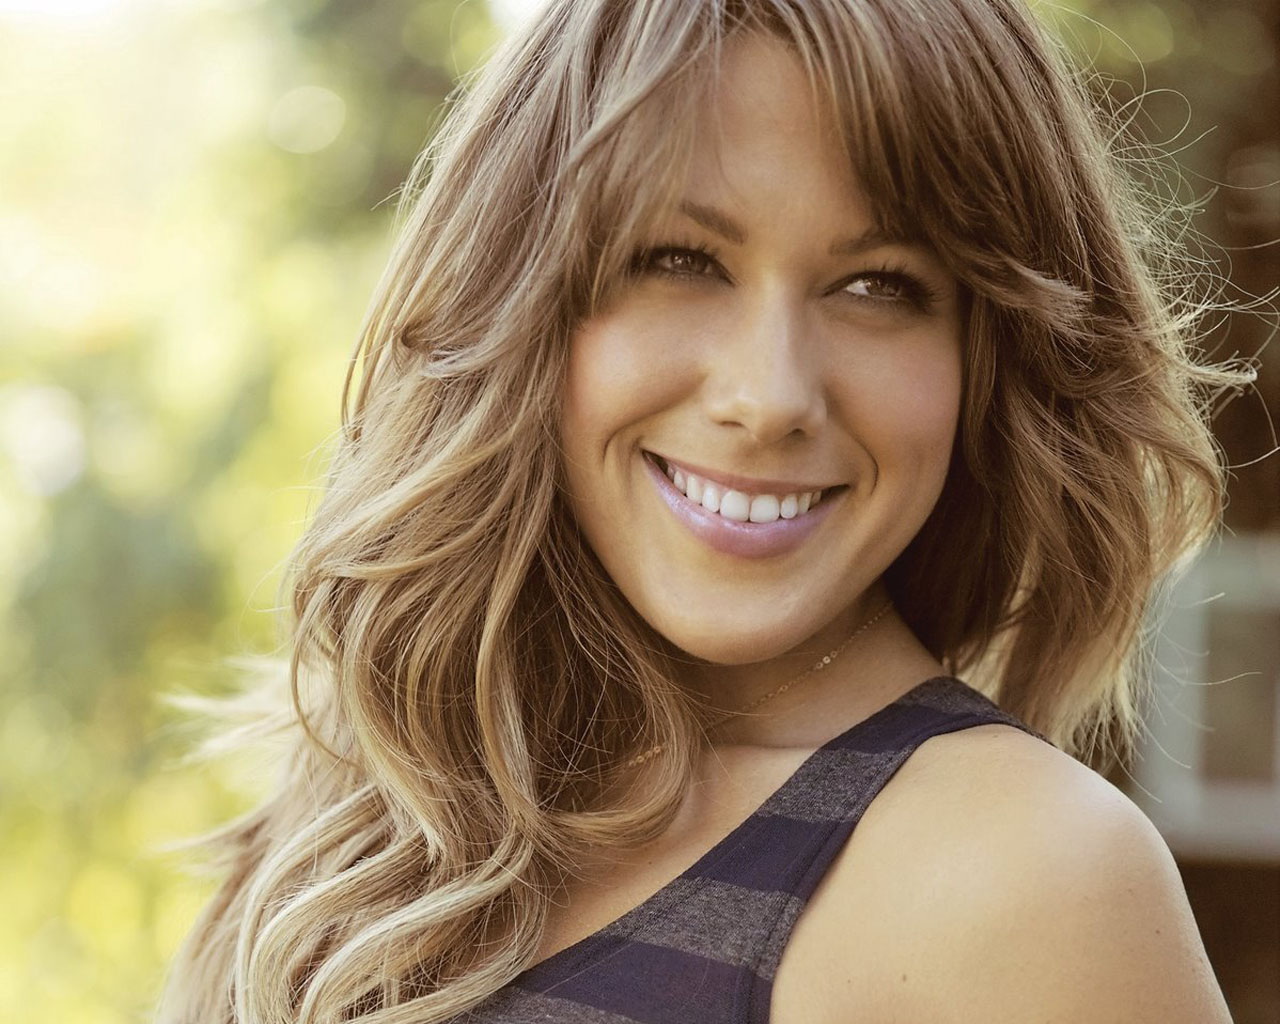 colbie caillat height